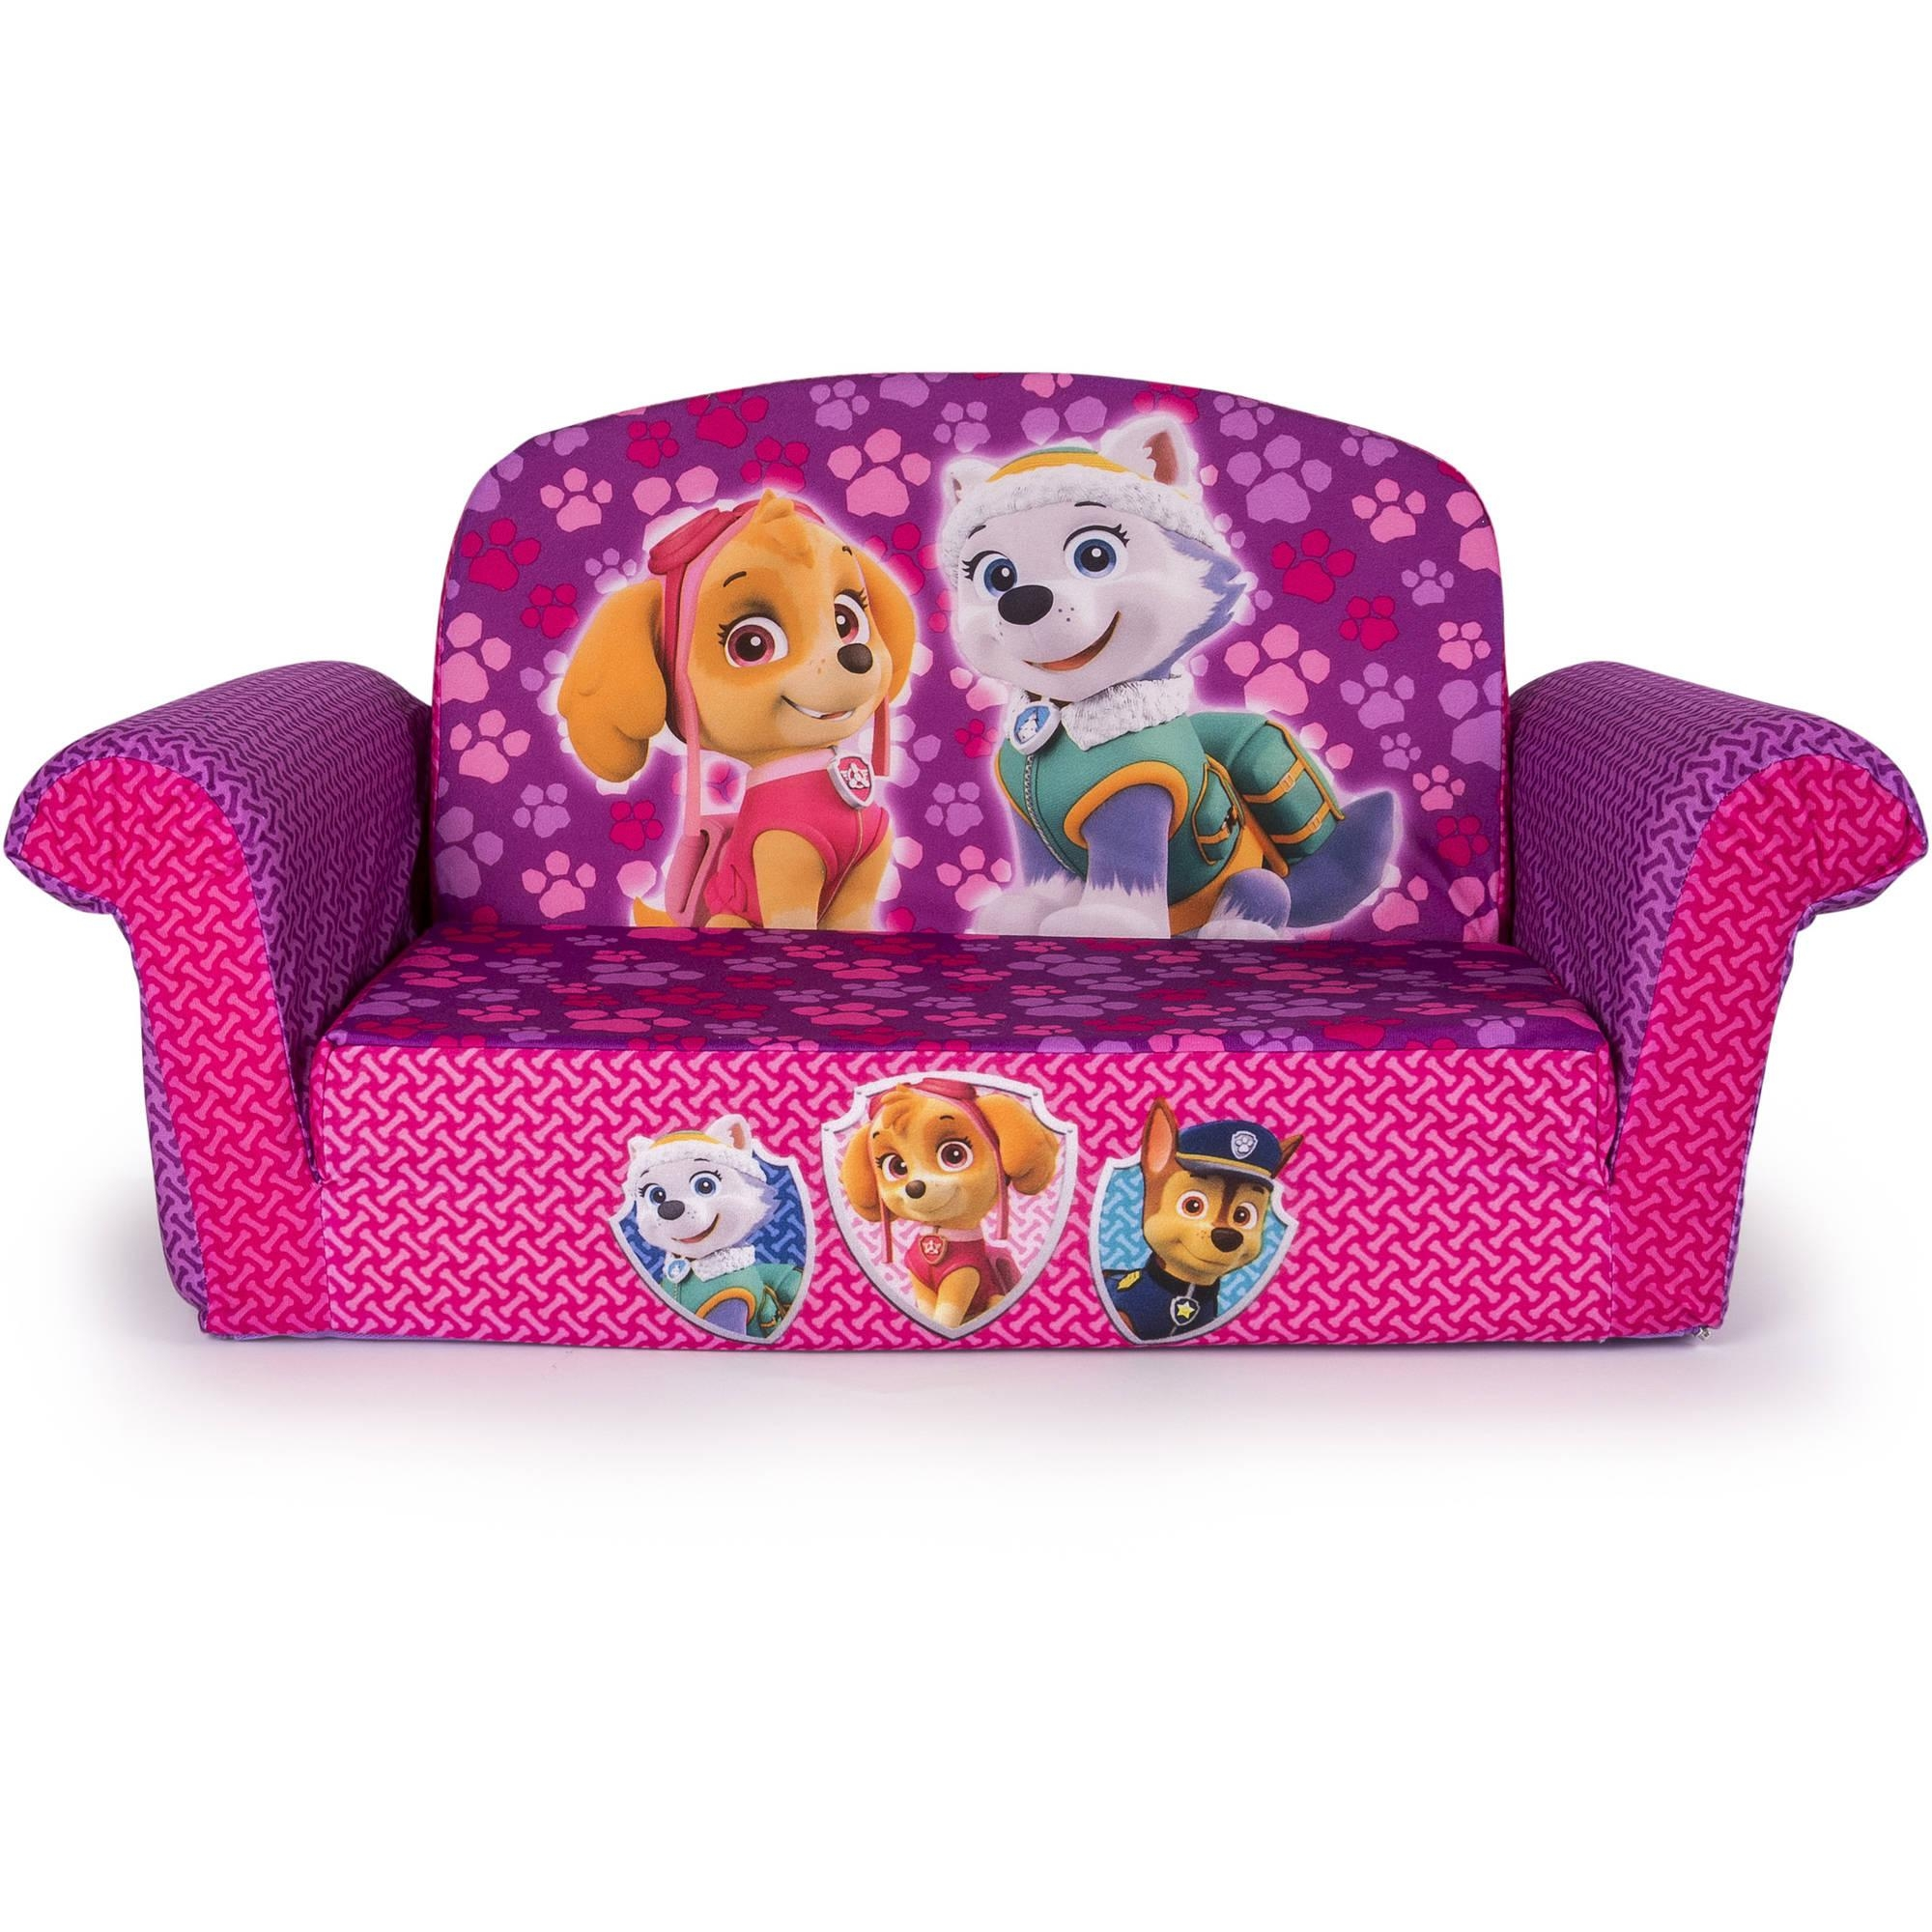 20 Top Flip Open Kids Sofas Sofa Ideas